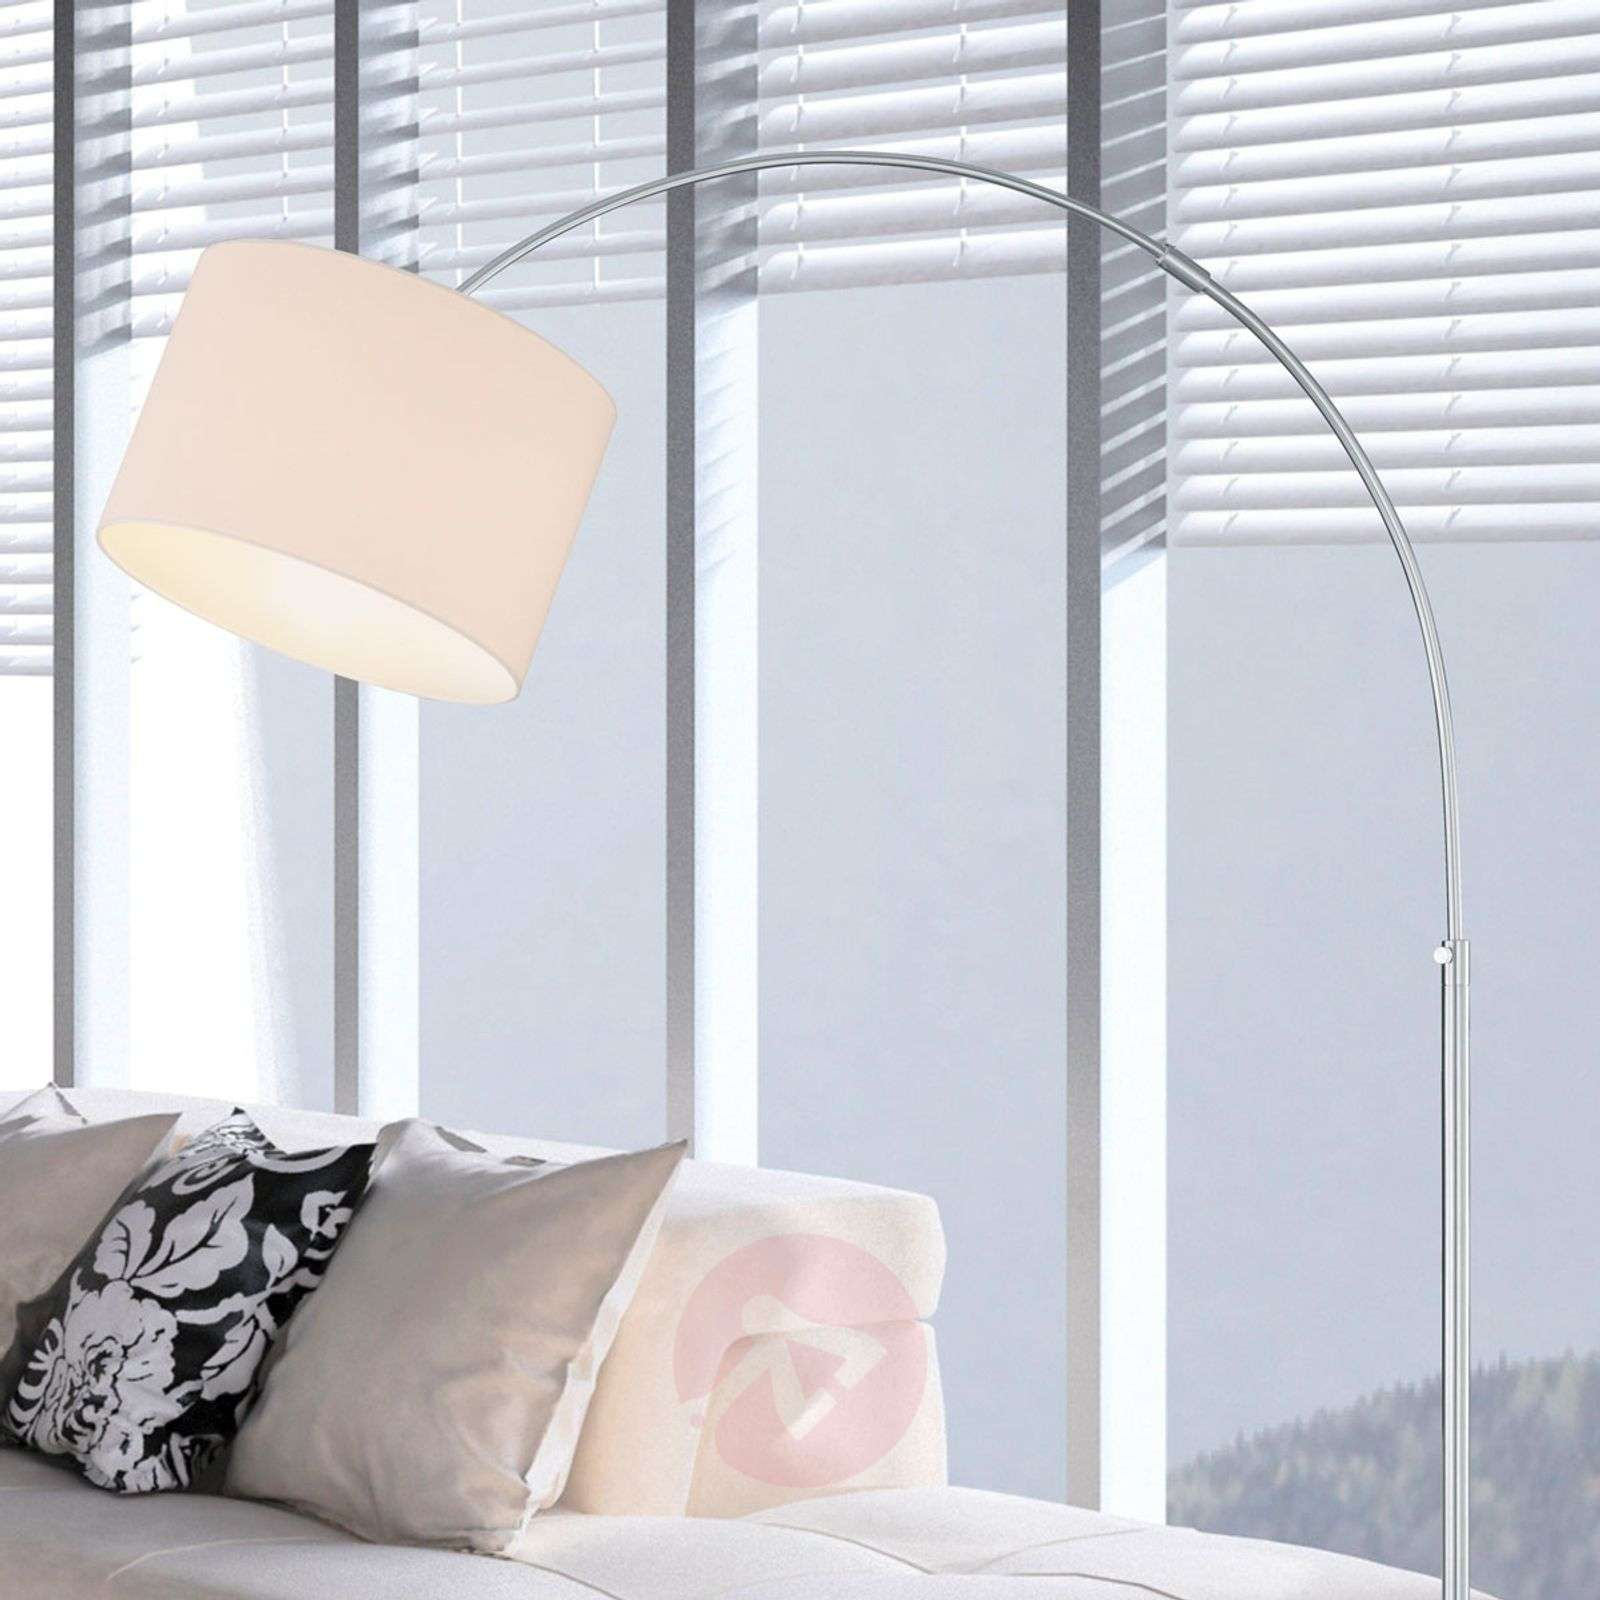 Curved floor lamp Risa with fabric lampshade-9004556-06